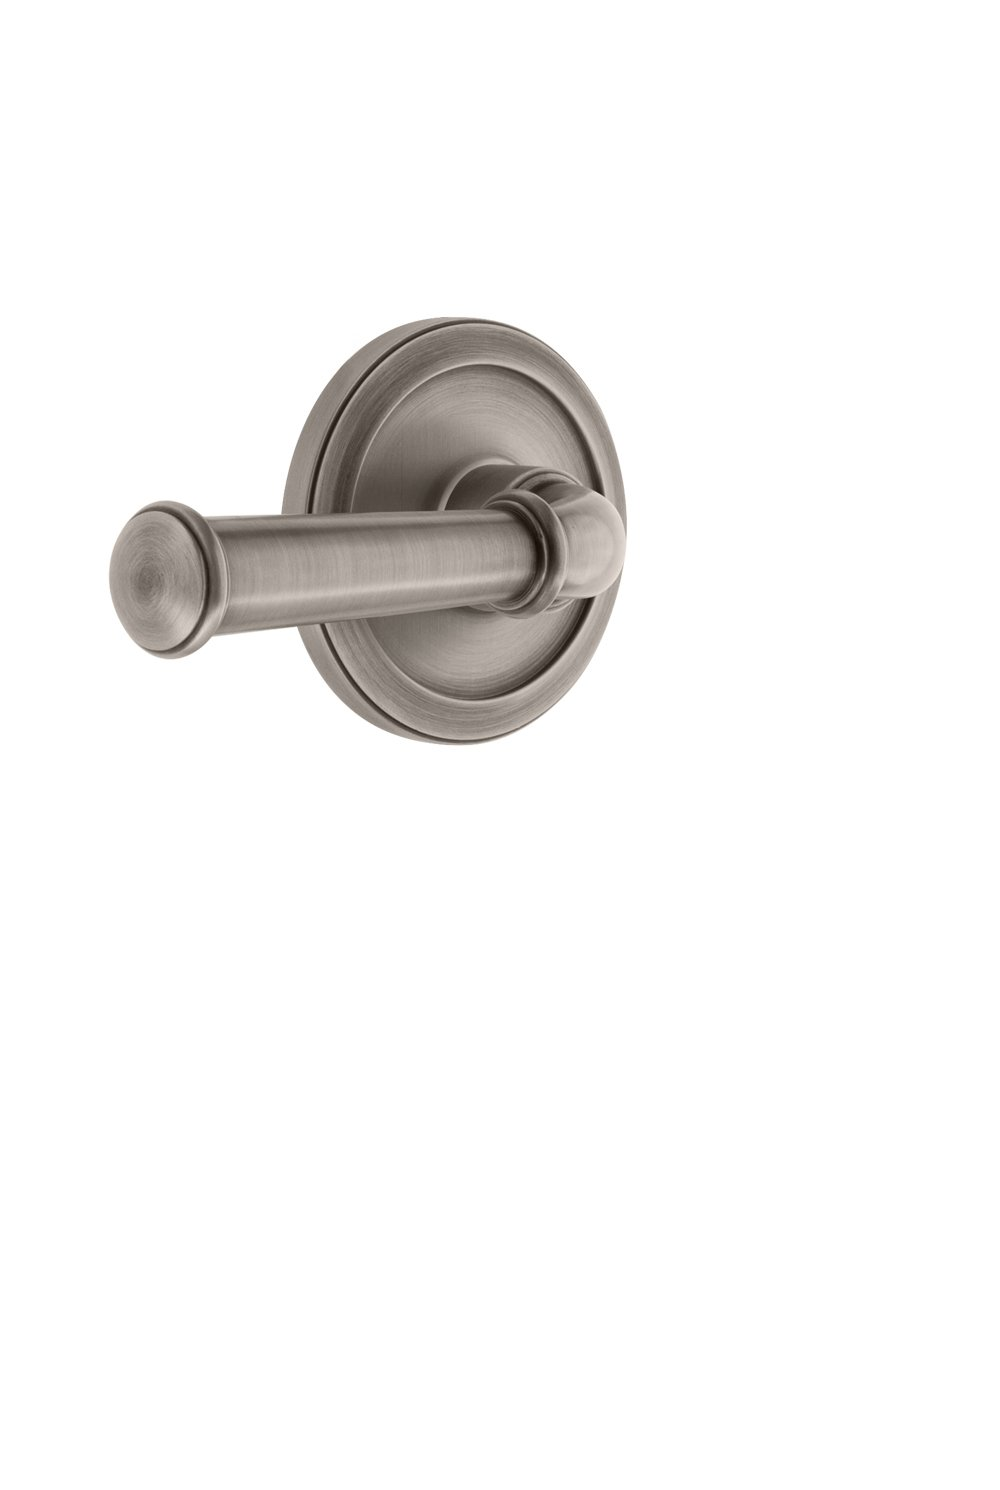 2.75 Grandeur 820017 Circulaire Rosette Passage with Georgetown Lever in Antique Pewter